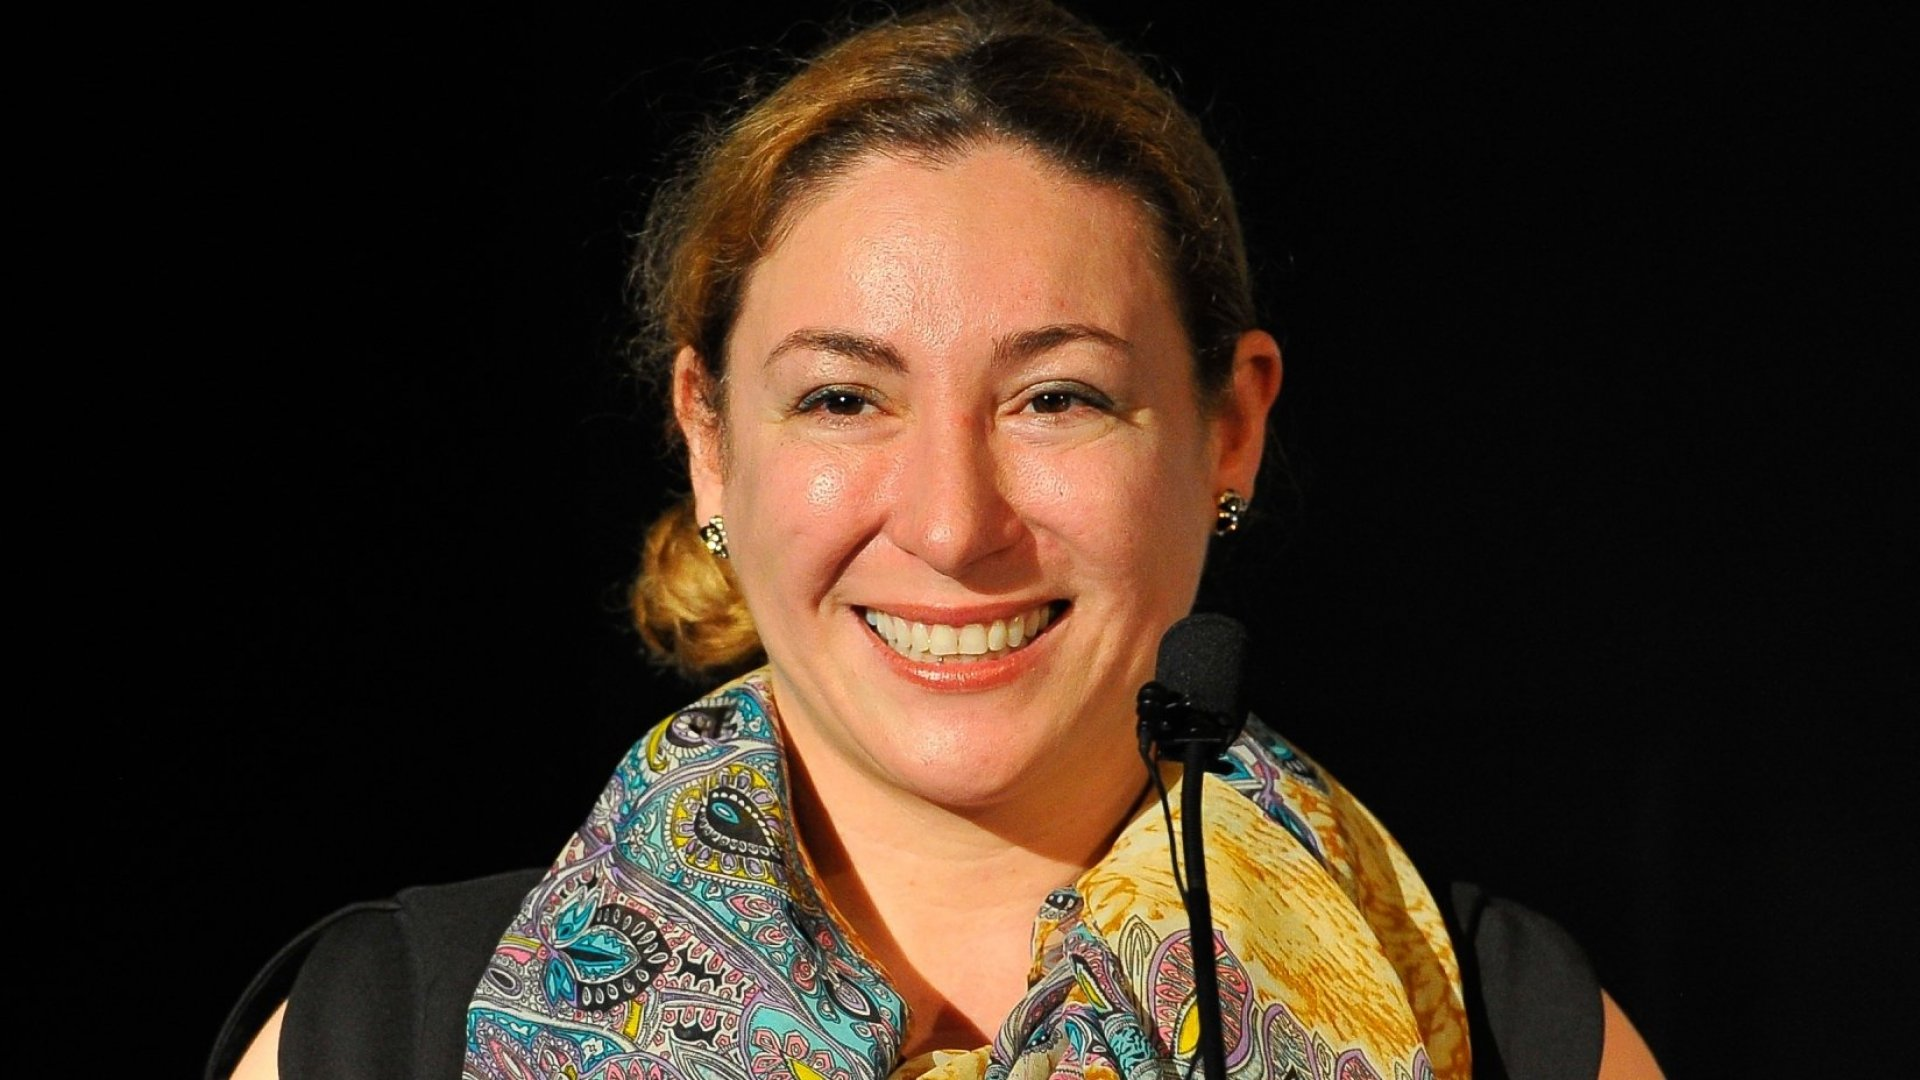 Jessica Richman, co-founder and co-CEO of San Francisco-based lab-testing startup uBiome.